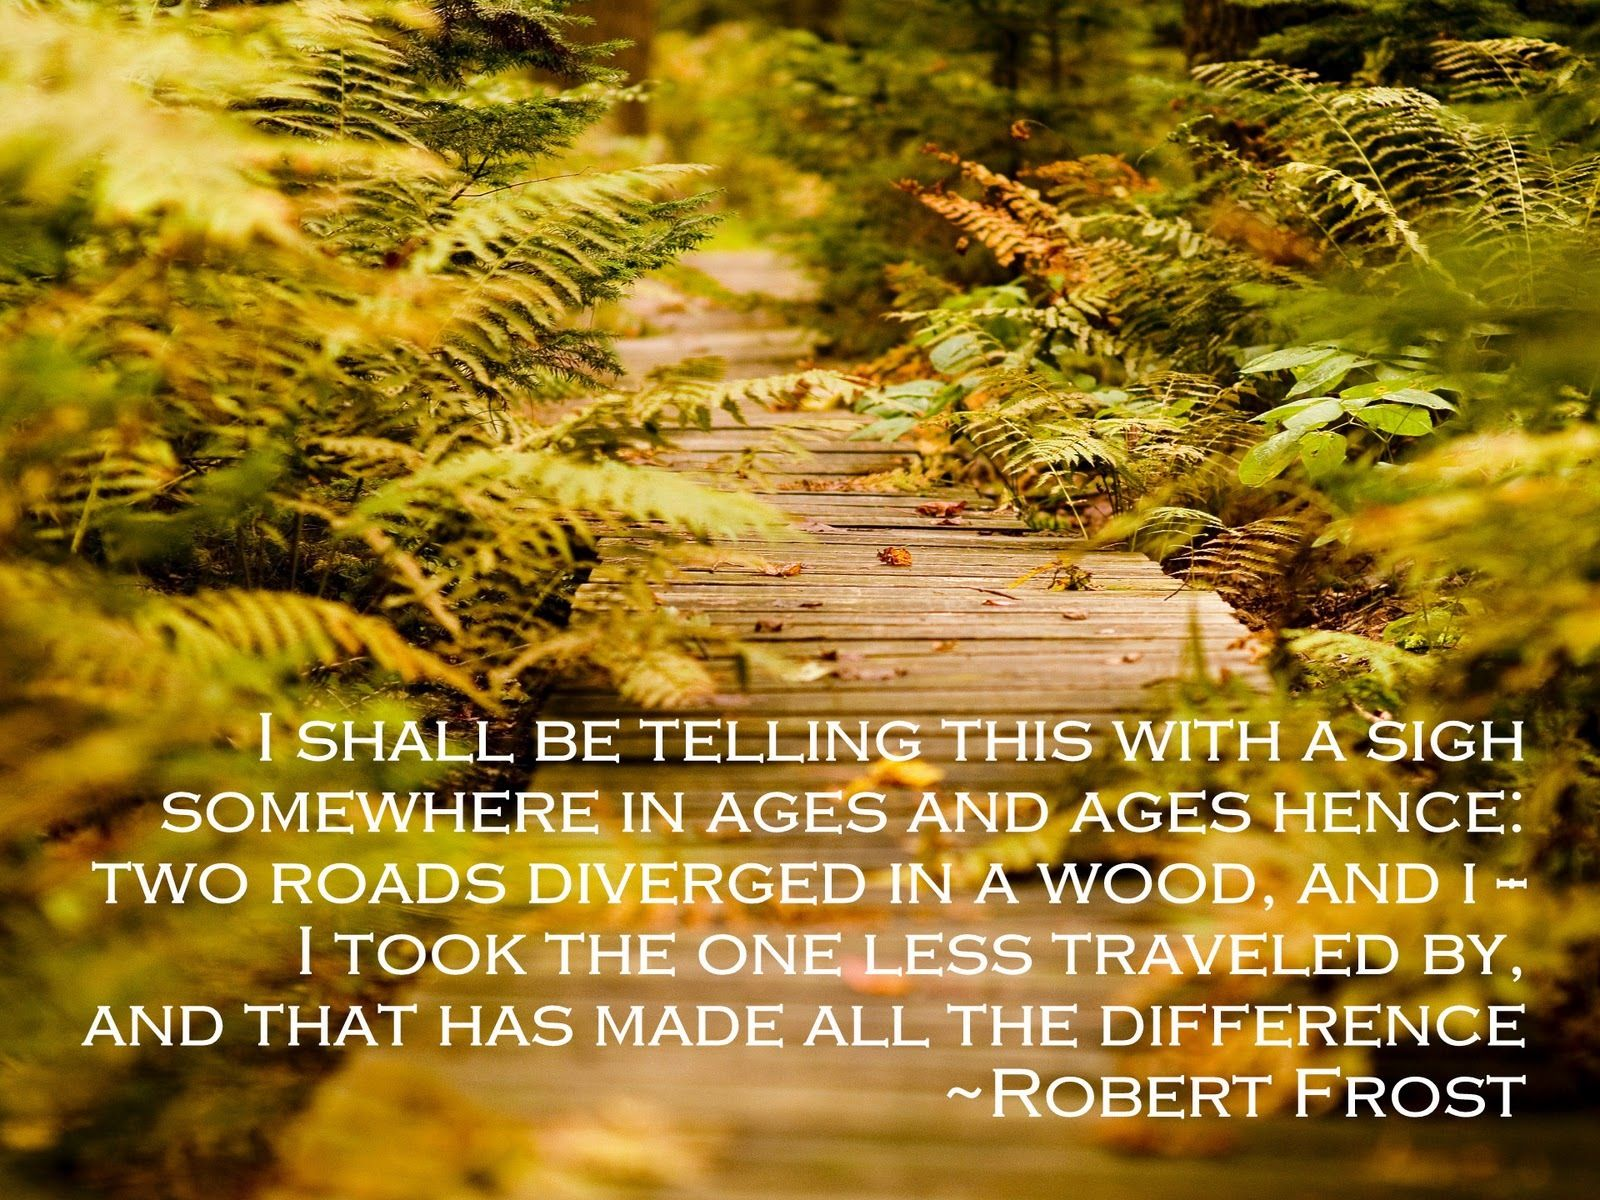 Robert frost thesis statement about nature